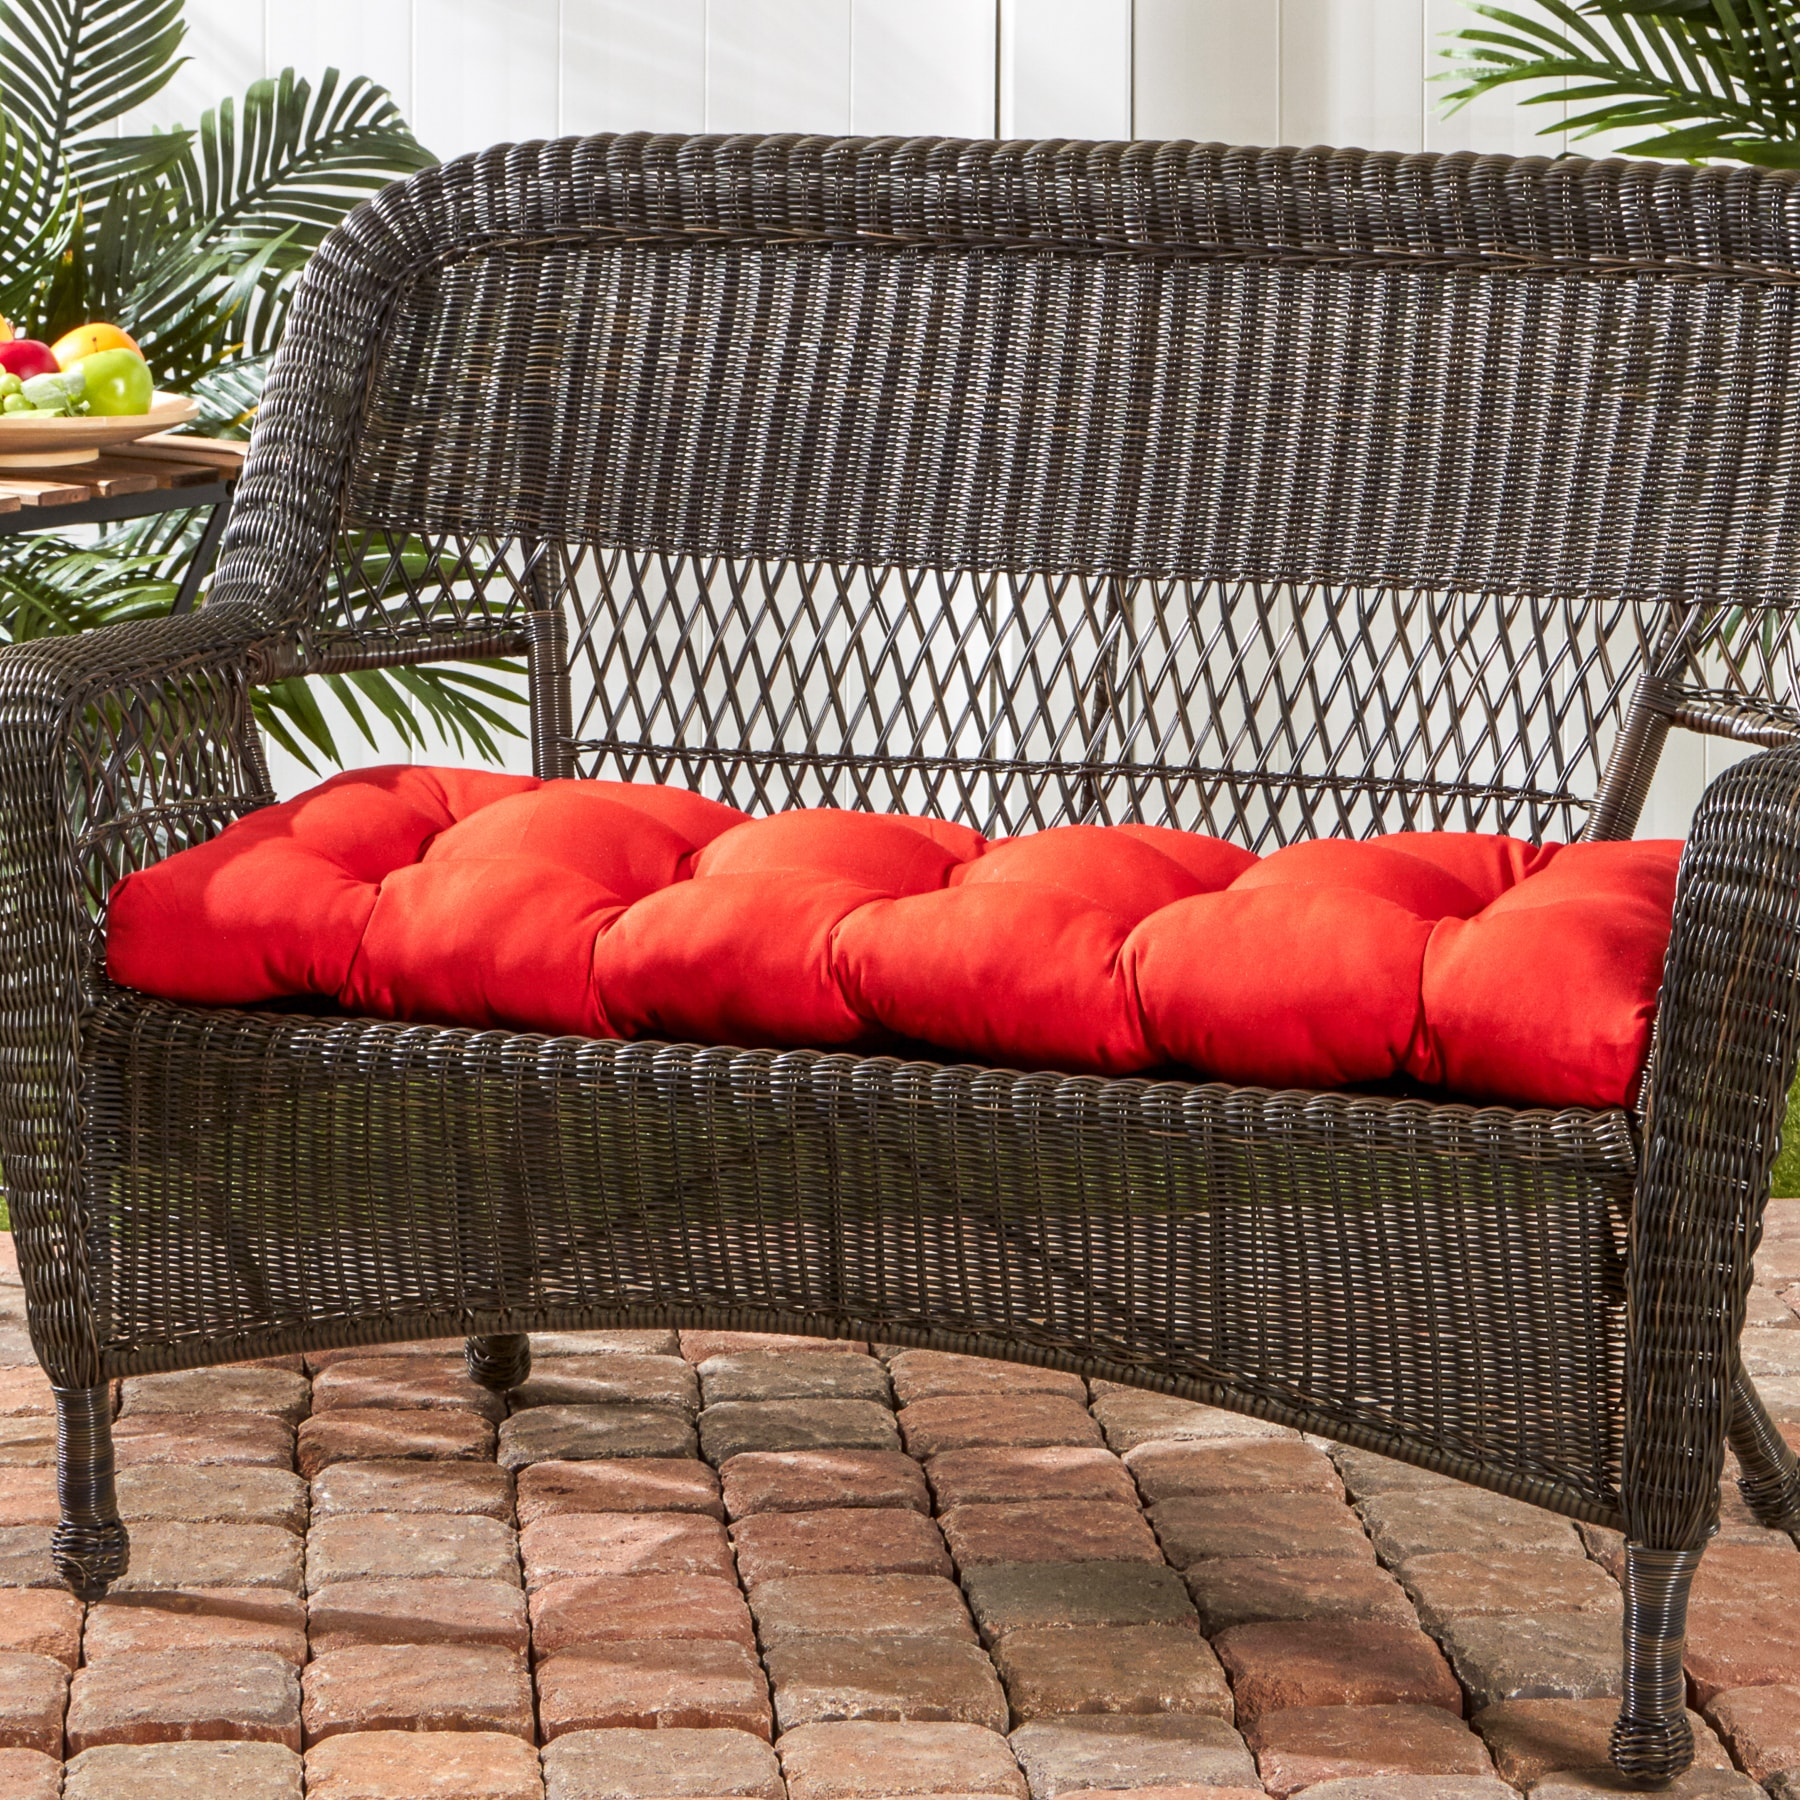 Shop Greendale Home Fashions Salsa 44 Inch Outdoor Swing Bench